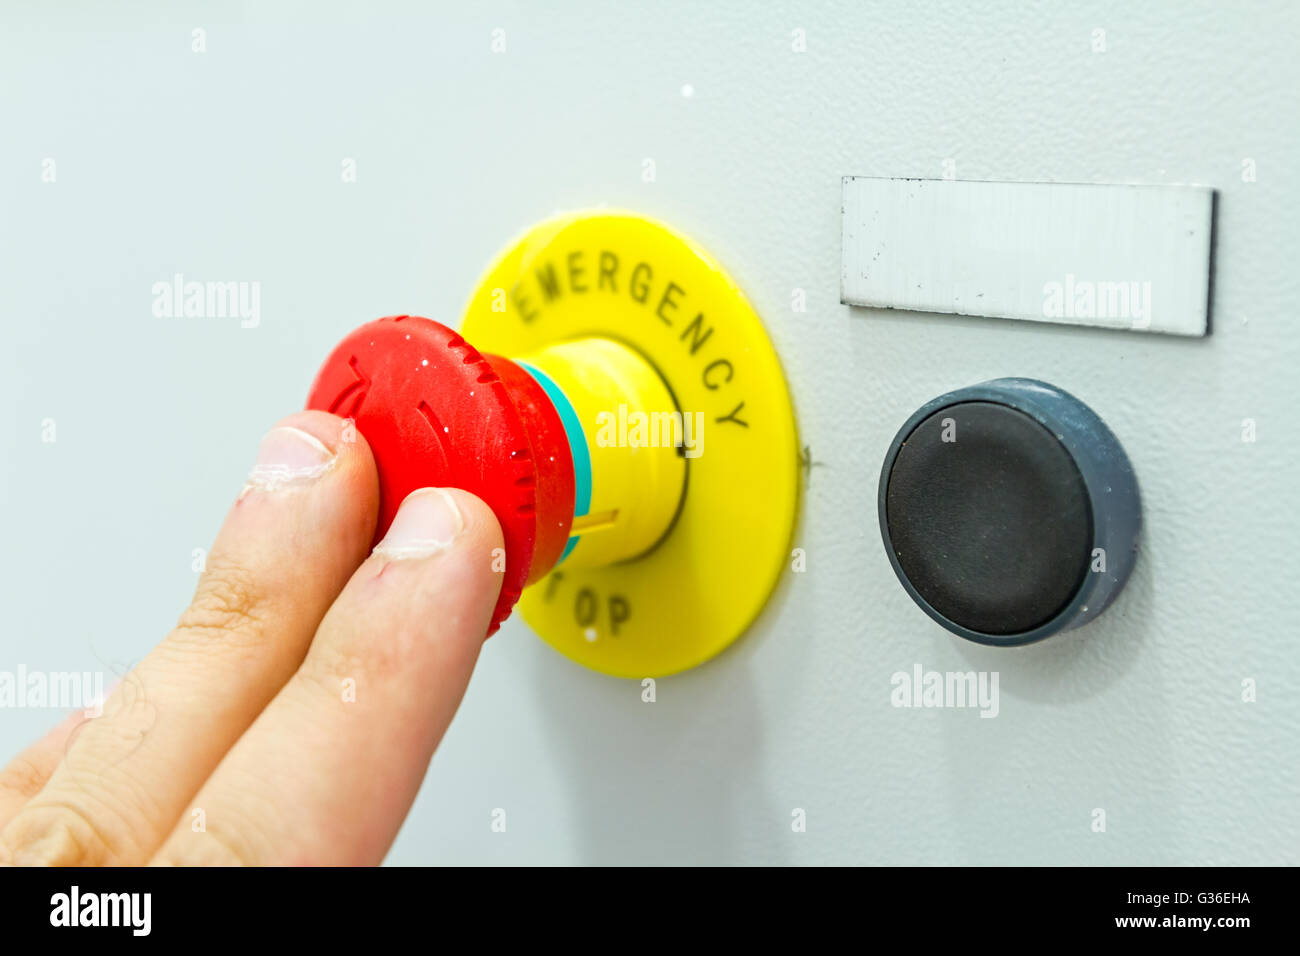 activation or shutdown fuse box, with an emergency reset button